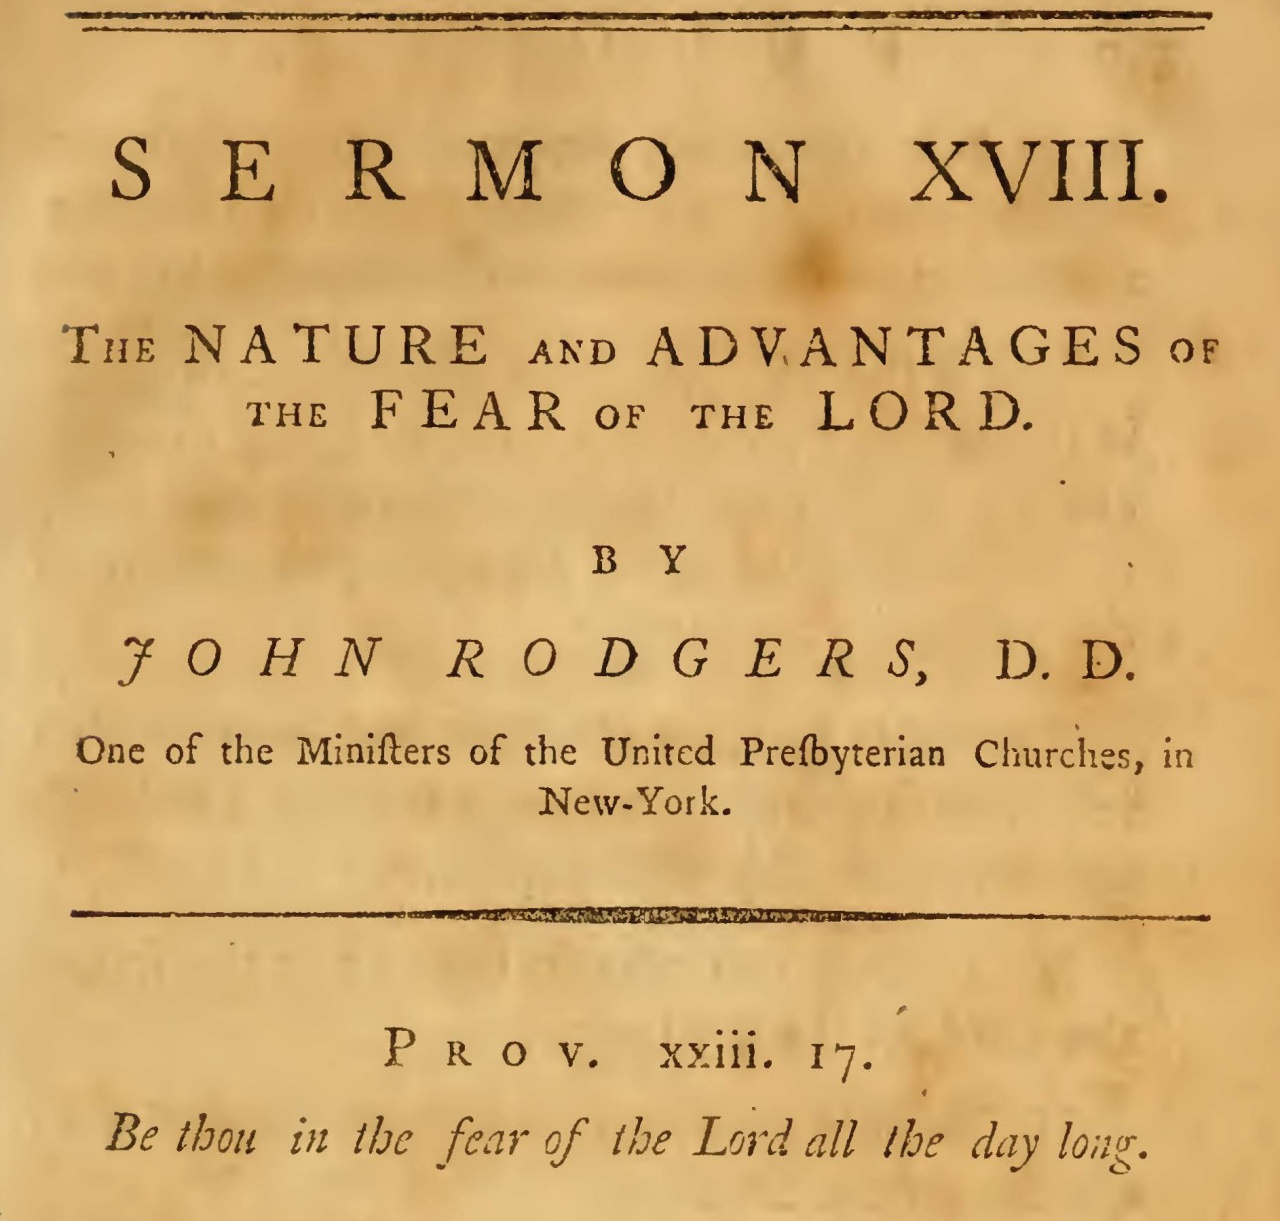 Rodgers, John, The Nature and Advantages of the Fear of the Lord Title Page.jpg